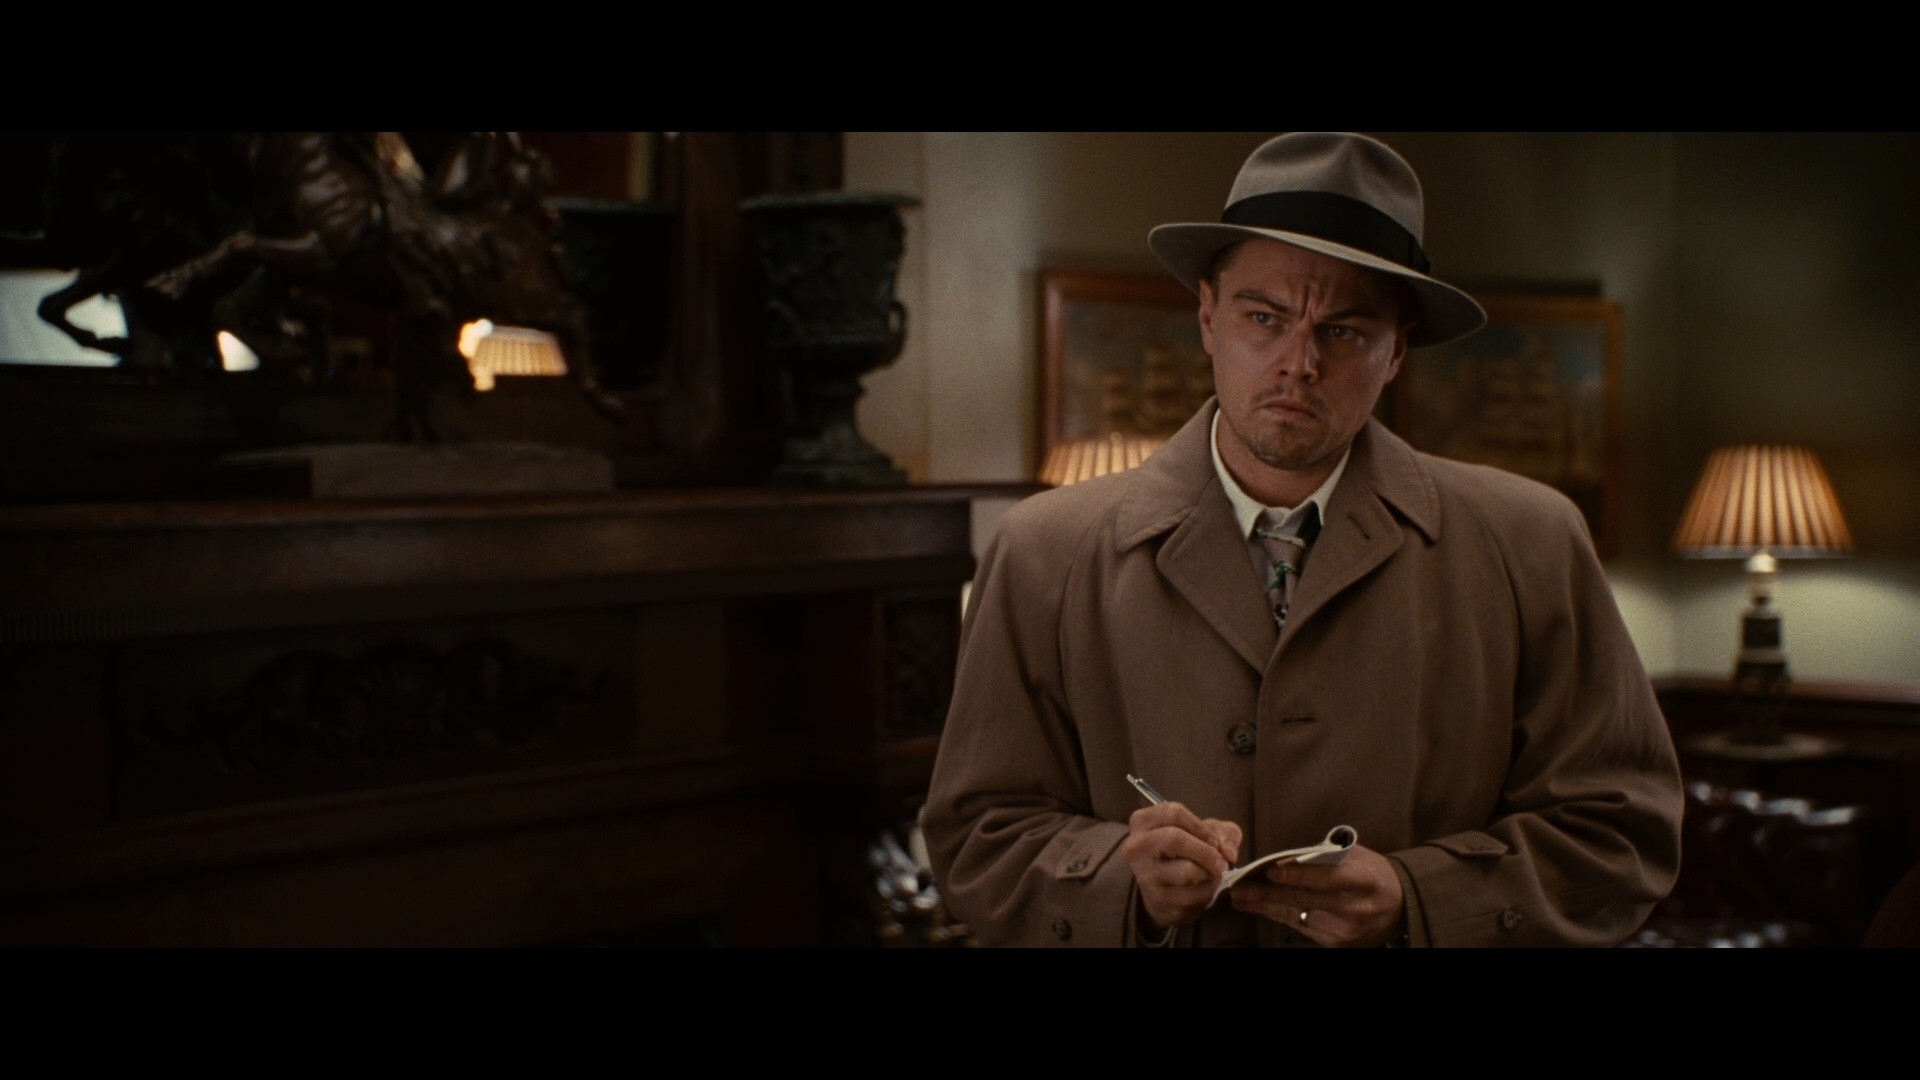 reaction paper to shutter island I haven't seen in the film, but in the book, he is indeed insane he was a murderer committed to the hospital, and the doctor, hoping to avoid subjecting him to a lobotomy, came up with the idea that informs the plot.